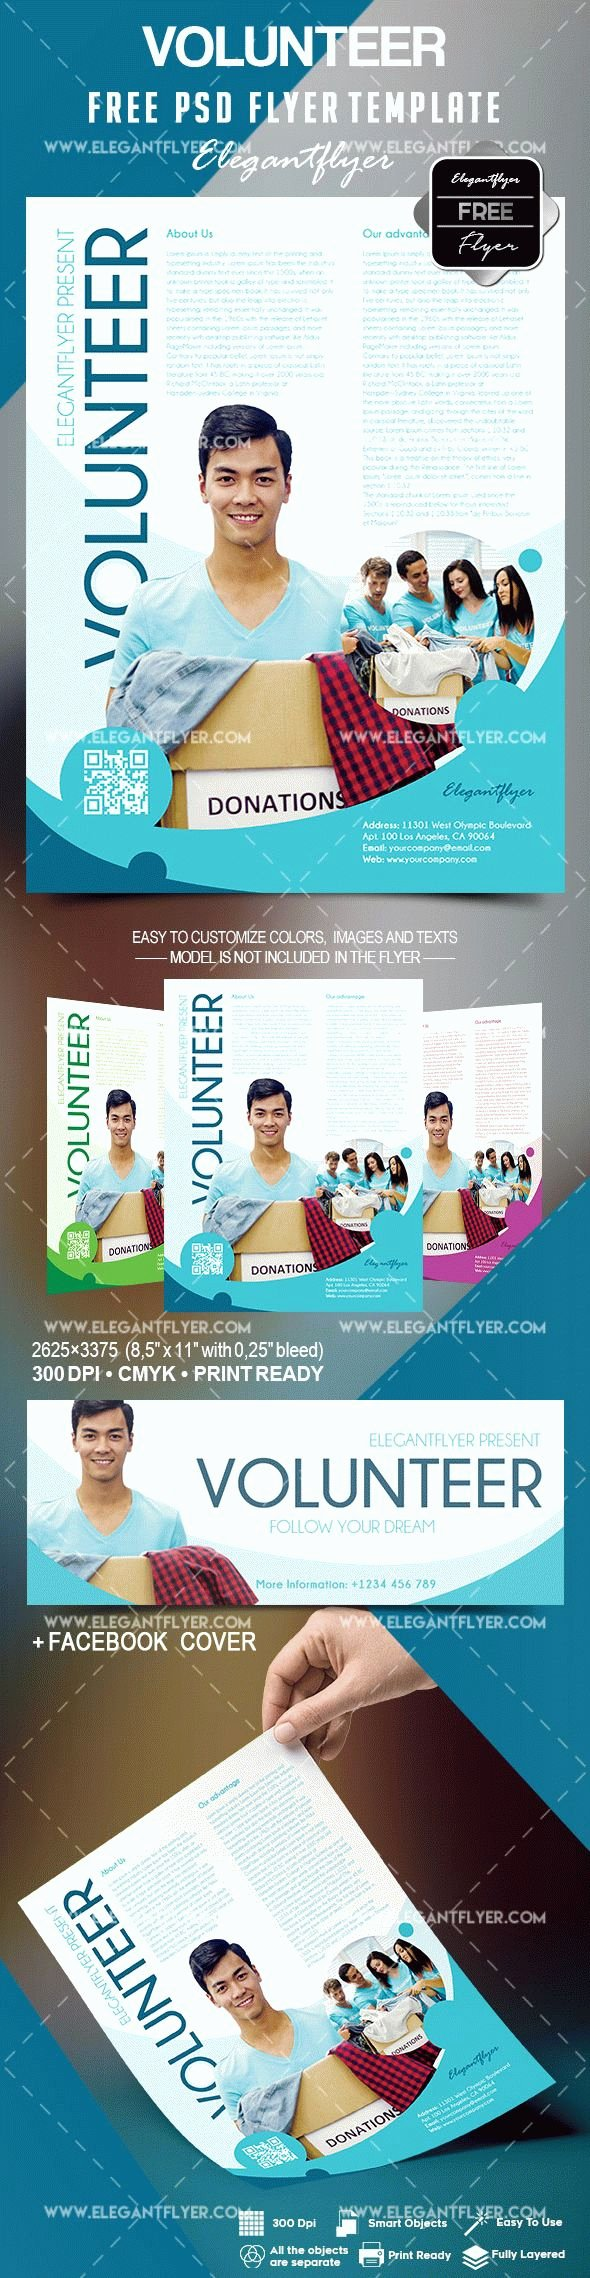 Volunteer Flyer Template Free Best Of Free Volunteer Flyer Template – by Elegantflyer